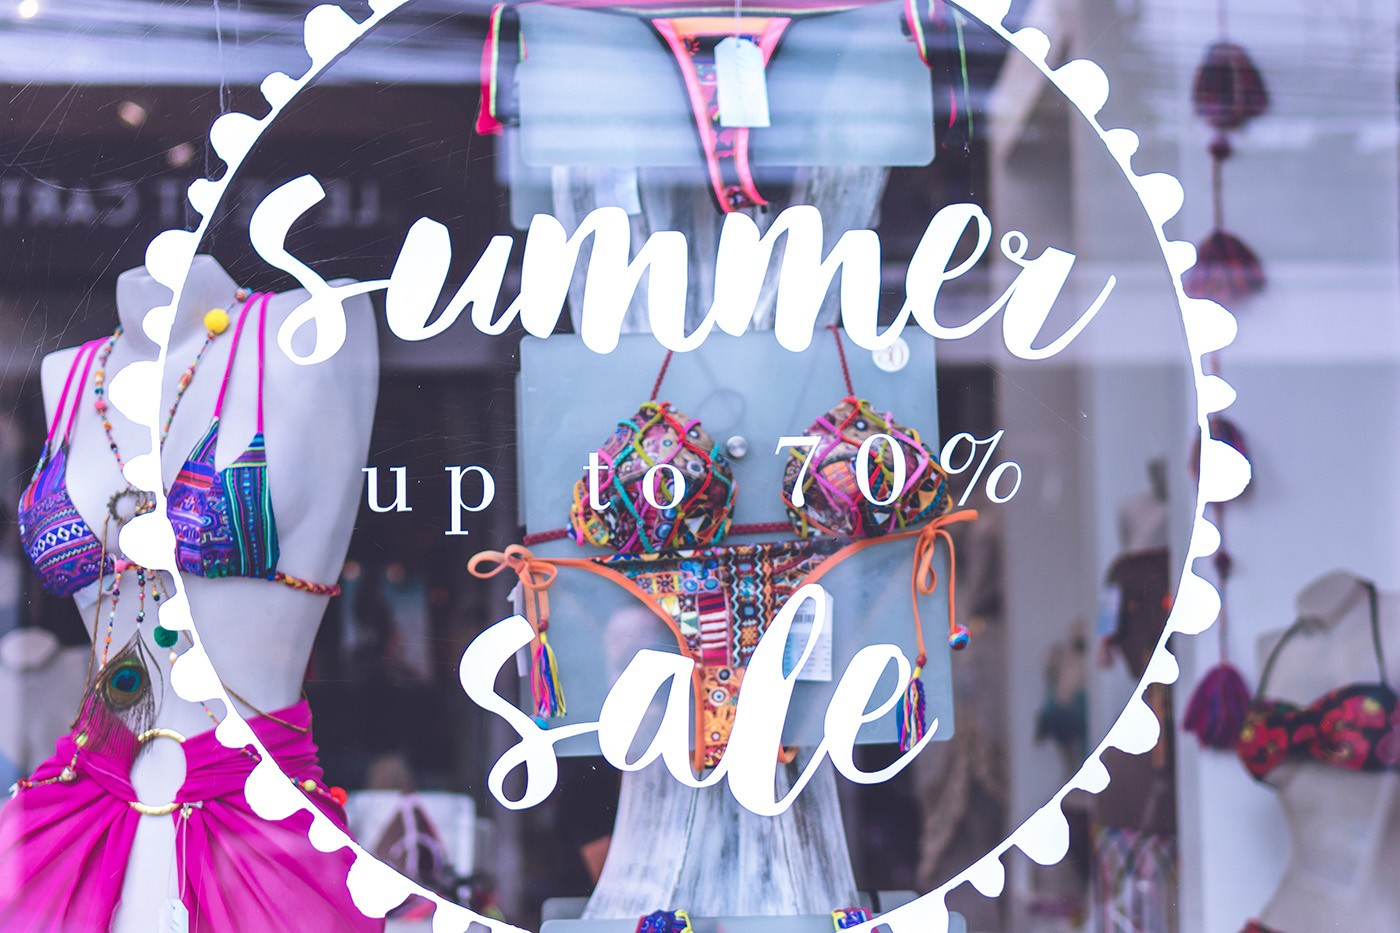 black friday summer up to 70% sale